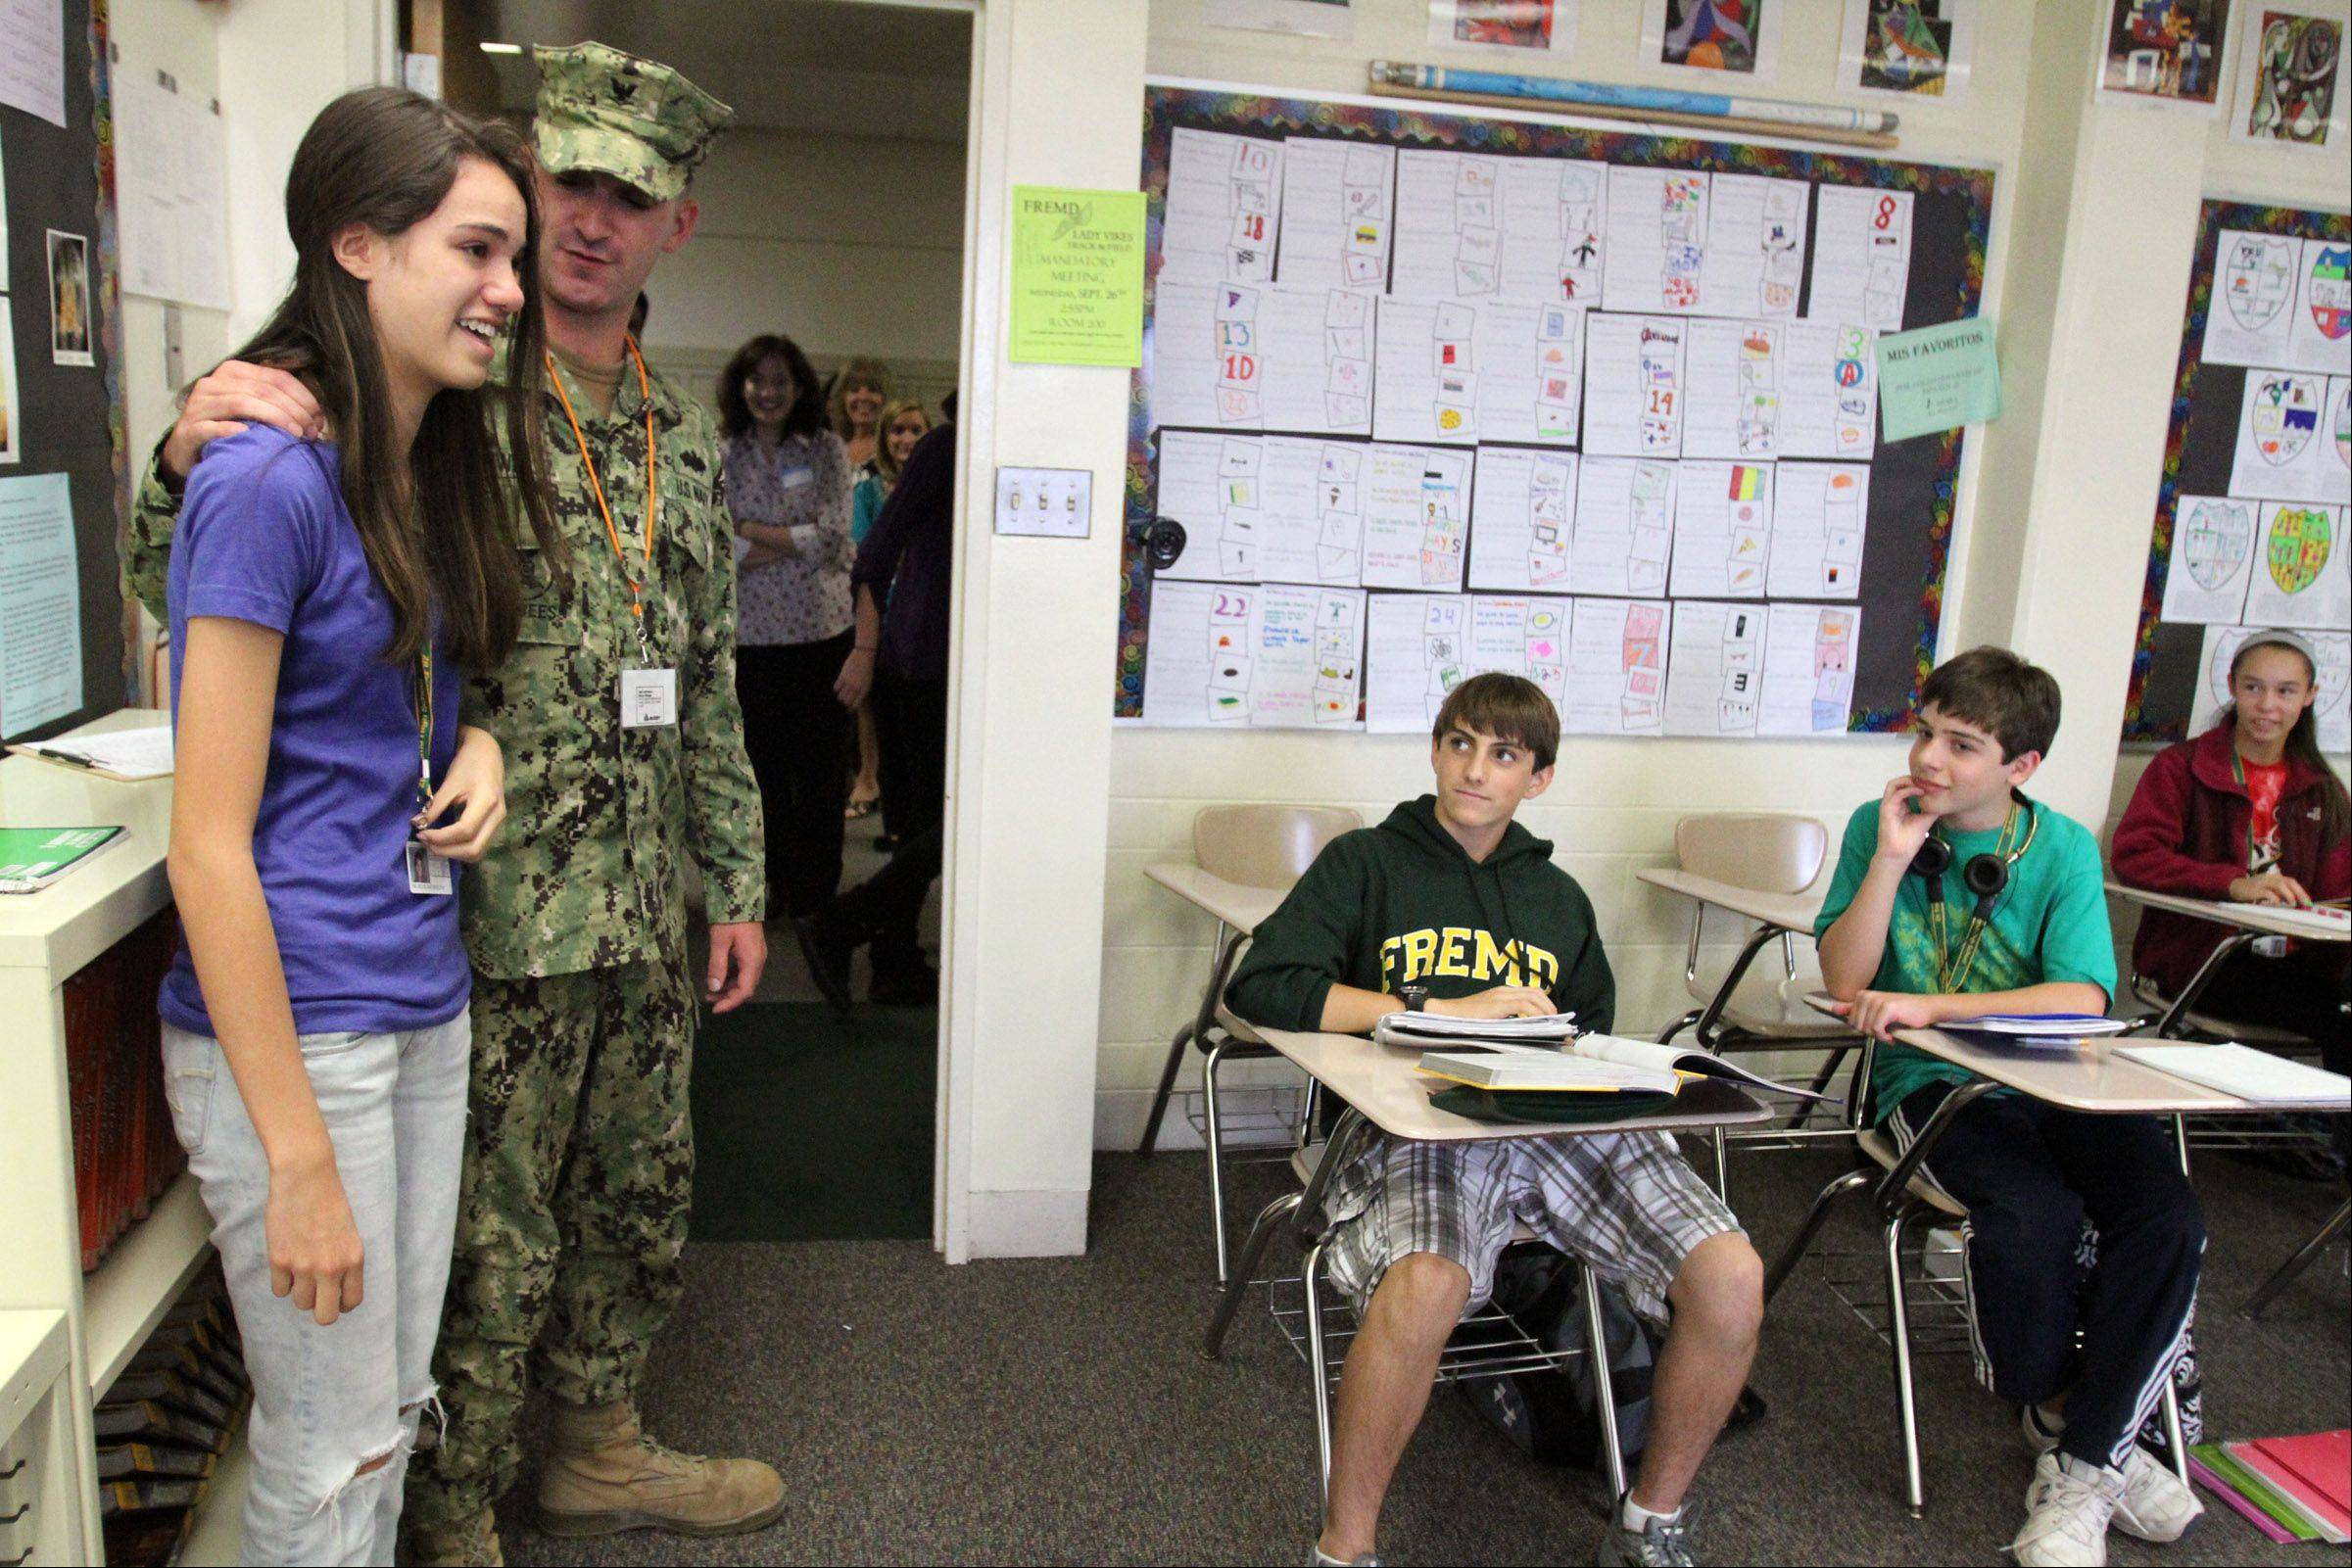 Fremd High School freshman Jackie Trujillo introduces older brother, U.S. Navy Petty Officer 3rd Class Cameron Schwartz, to her Spanish class. He surprised his siblings Wednesday after returning from a deployment in Afghanistan.